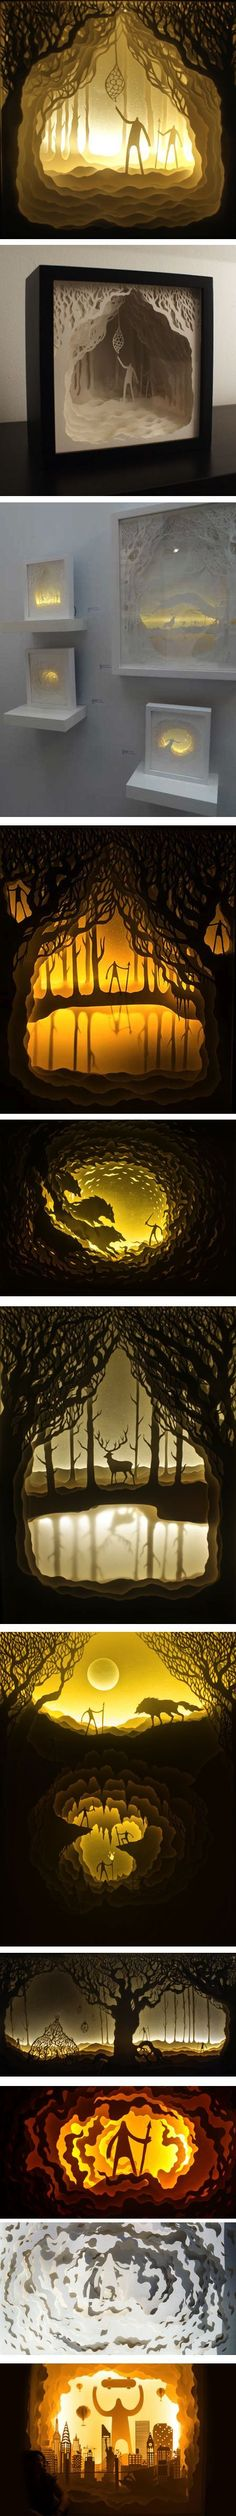 Harikrishnan Panicker and Deepti Nair create cut paper shadow boxes, illuminated…